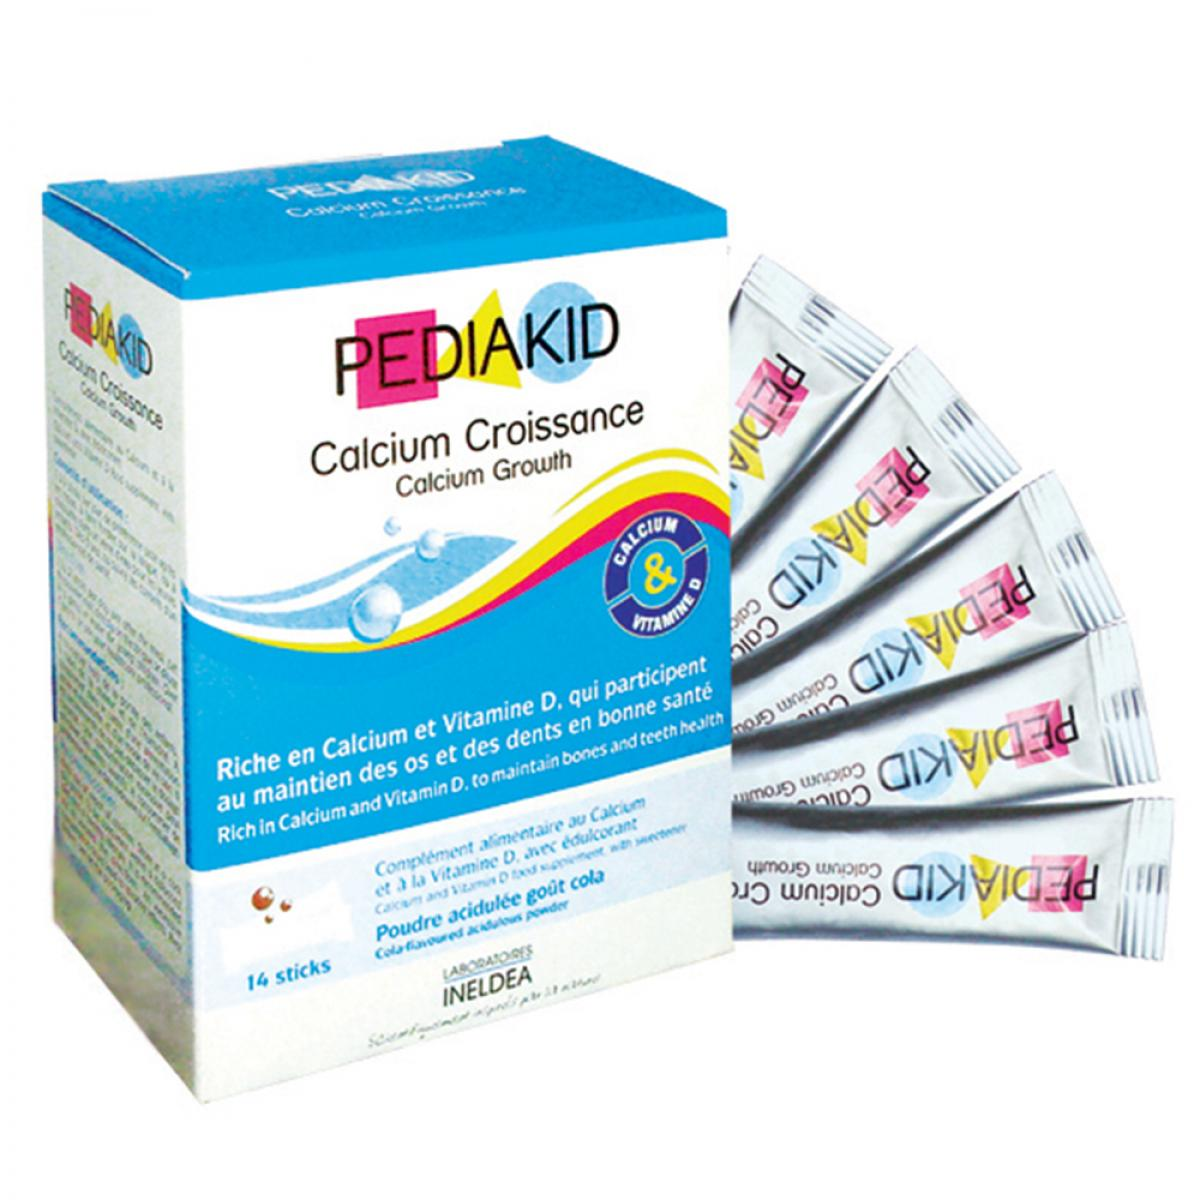 PEDIAKID CANXI CROISSANCE/PEDIAKID CANXI TĂNG TRƯỞNG